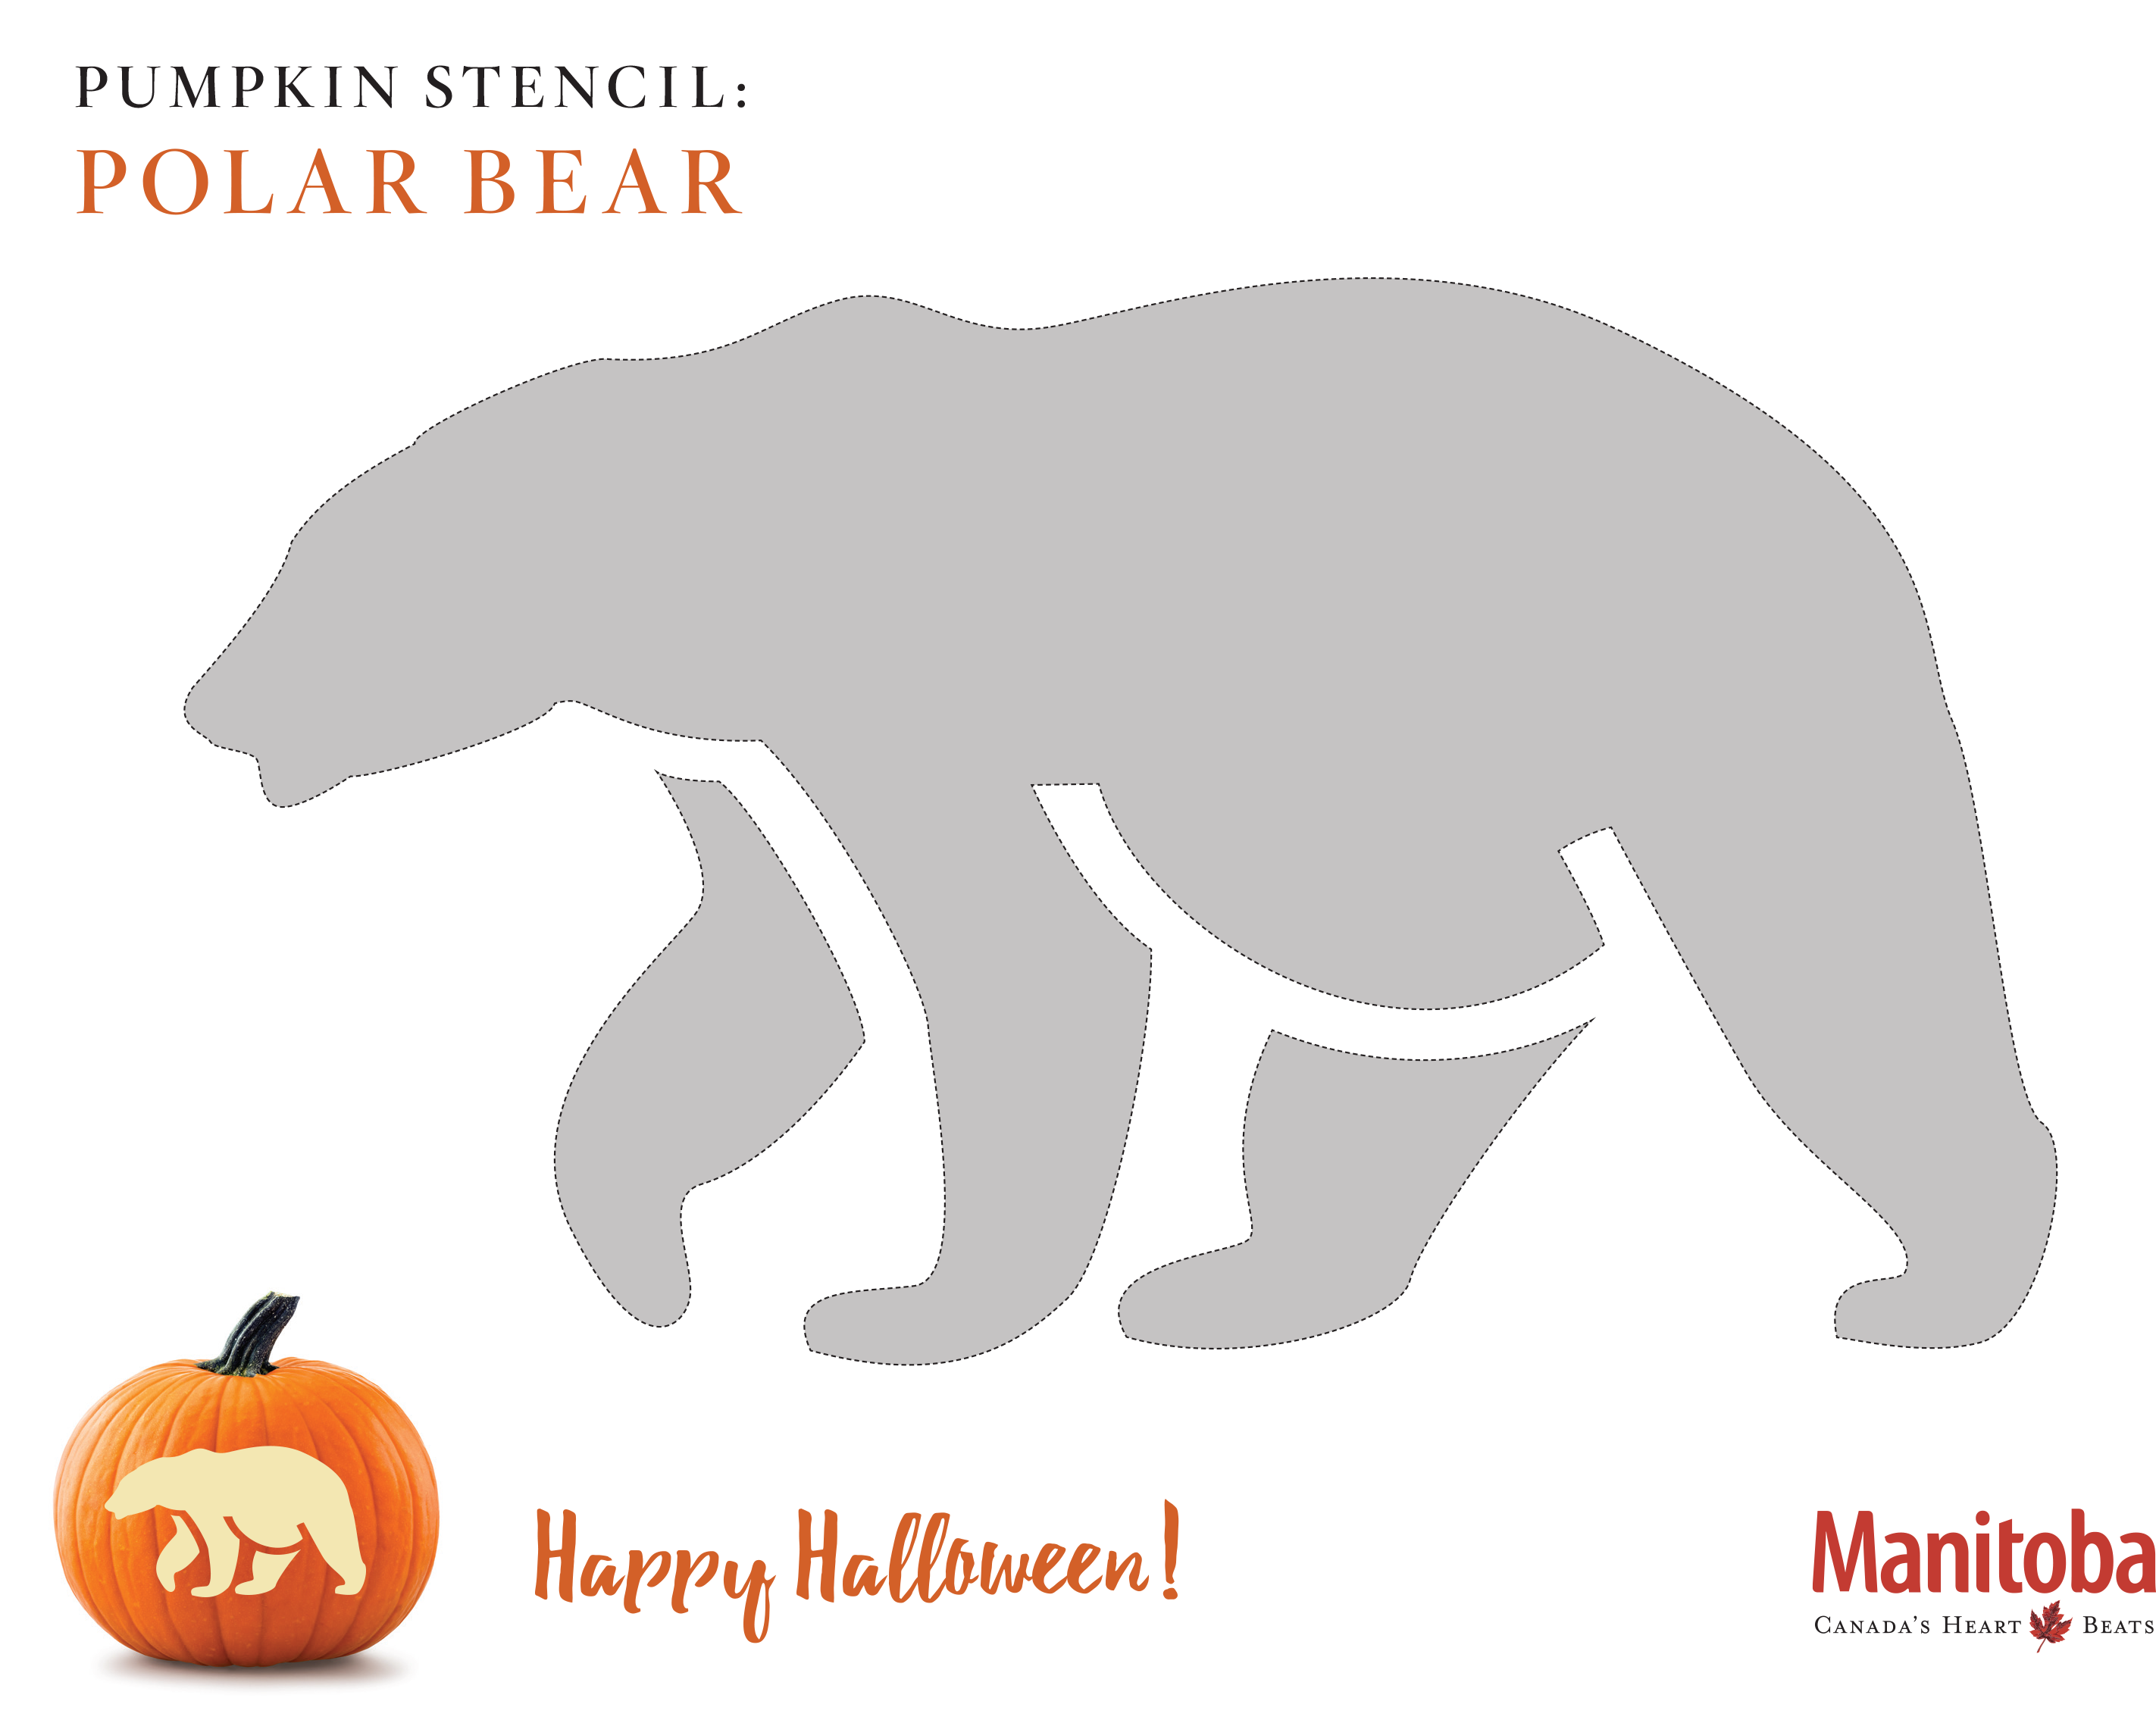 Polar Bear Pumpkin Carving Stencil